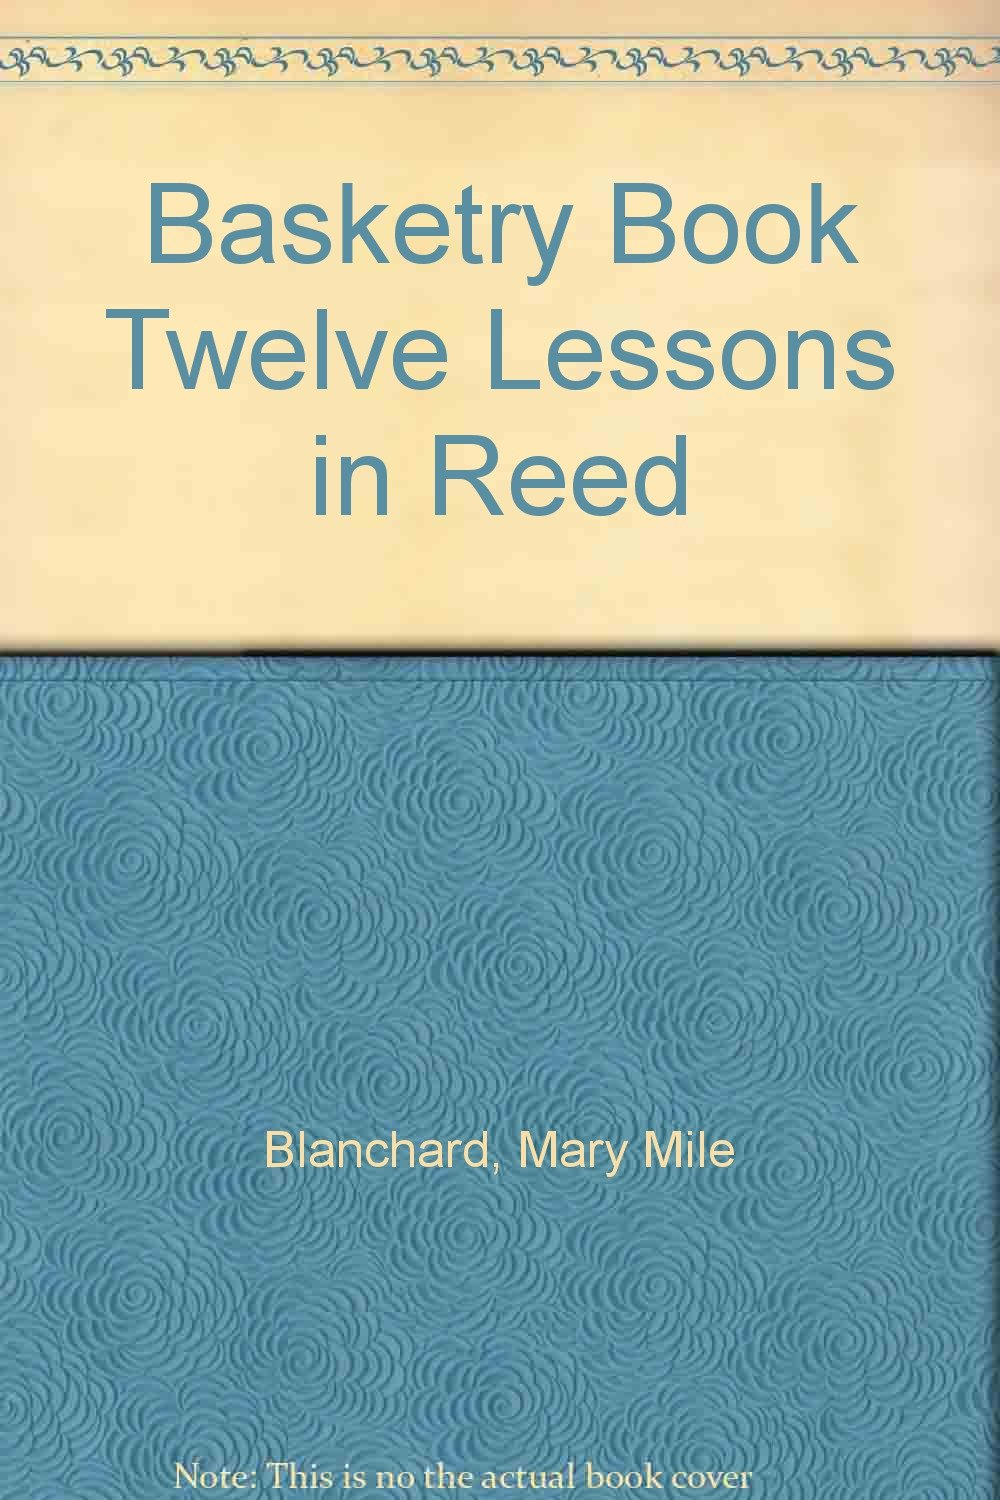 Basketry Book Twelve Lessons in Reed